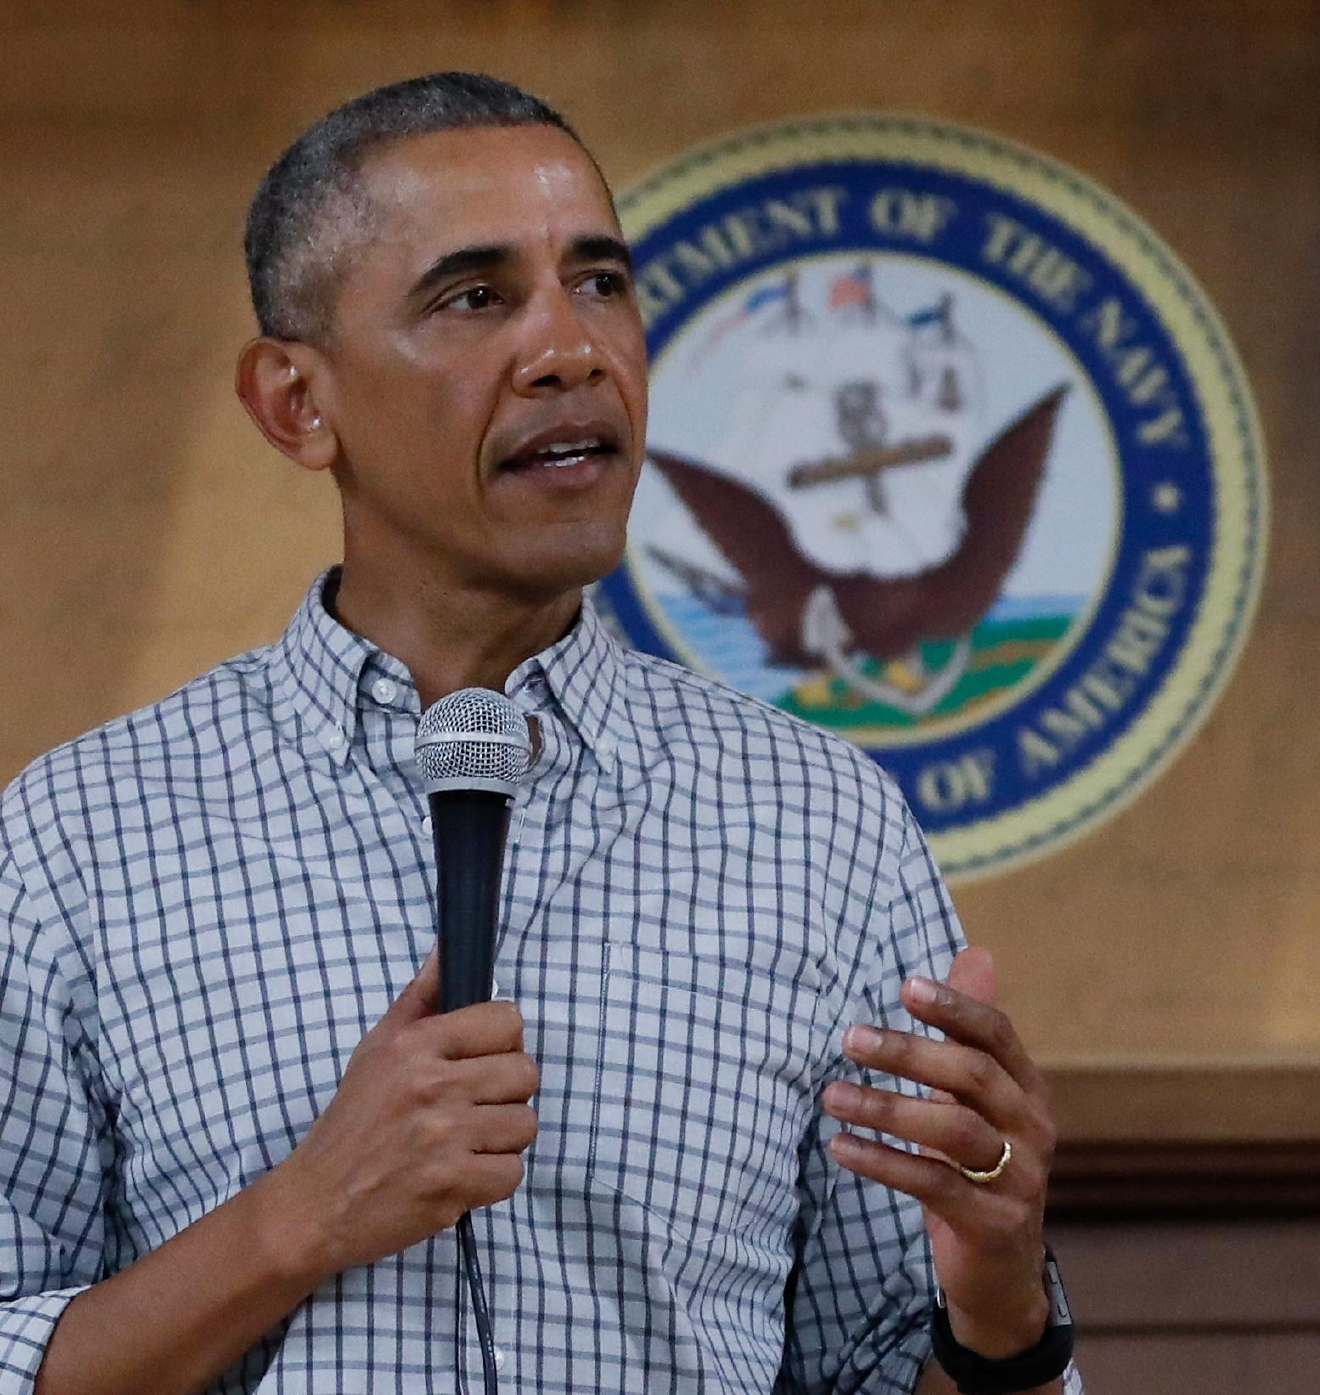 President Barack Obama speaks during an event to thank service members and their families at Marine Corps Base Hawaii in Kaneohe Bay, Hawaii, Sunday, Dec. 25, 2016. (AP Photo/Carolyn Kaster)